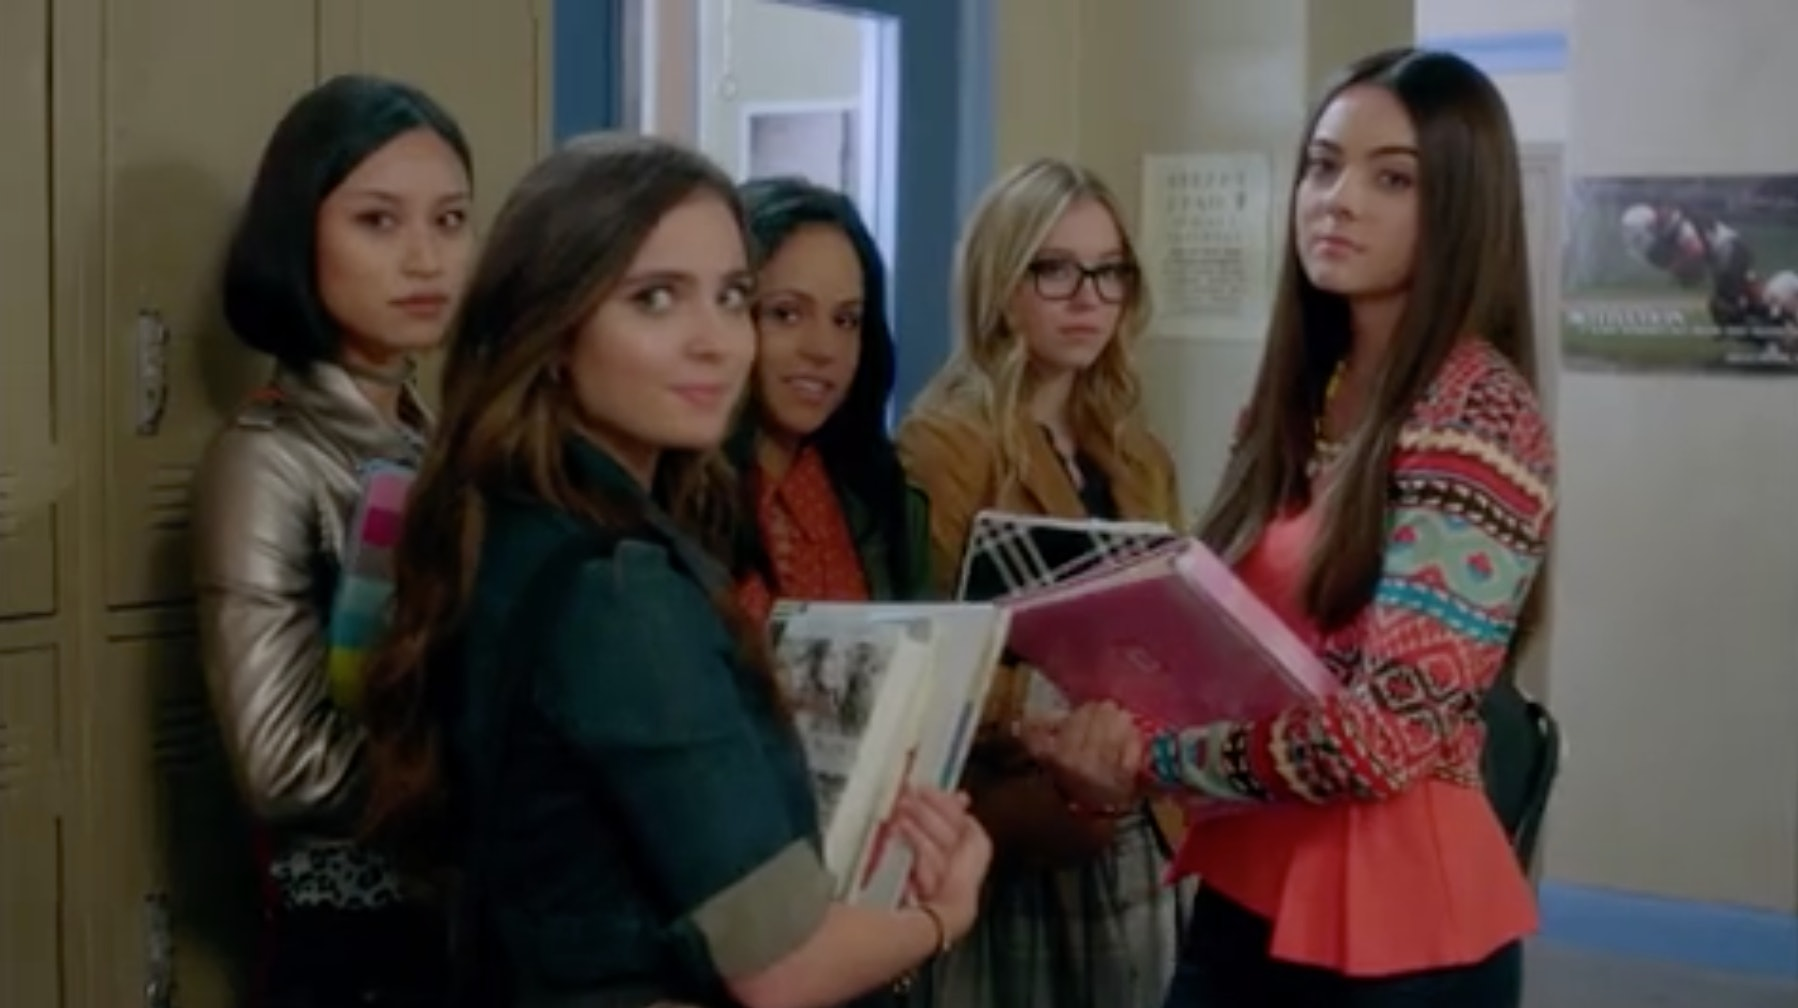 A 'Pretty Little Liars' Spin-Off Could Totally Happen Based On That Final  Scene